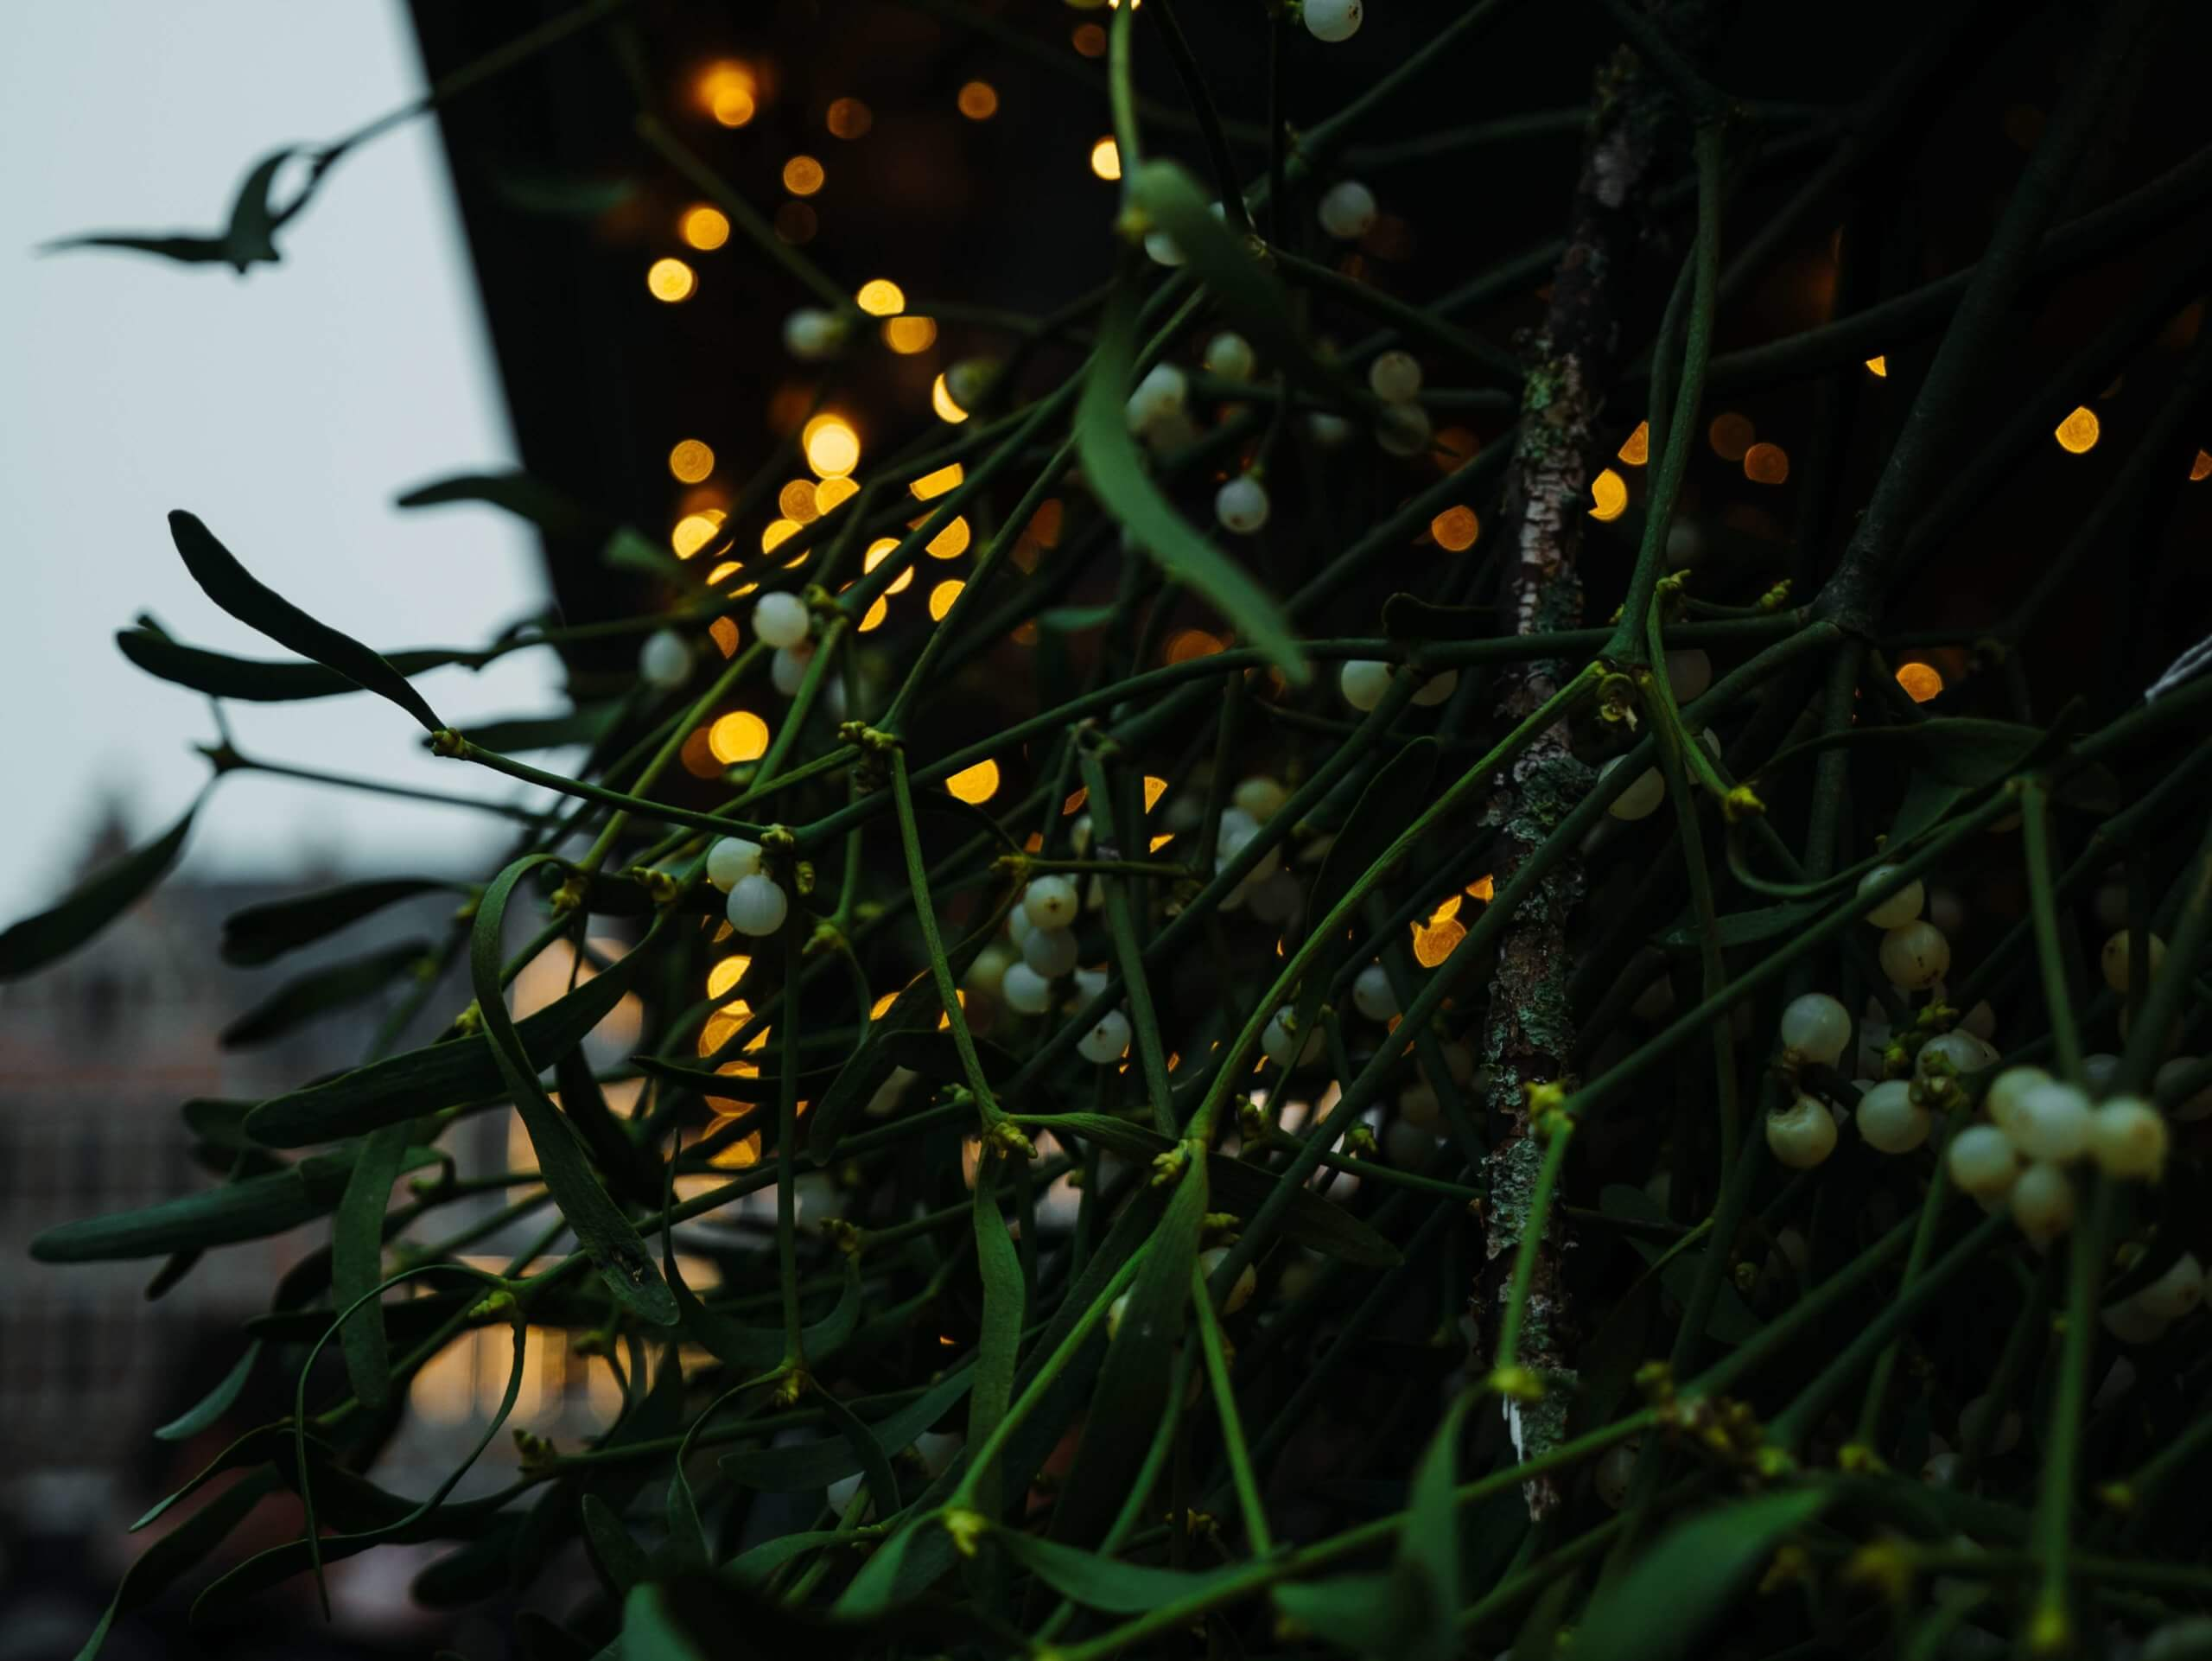 Mistletoe hanging near holiday lights